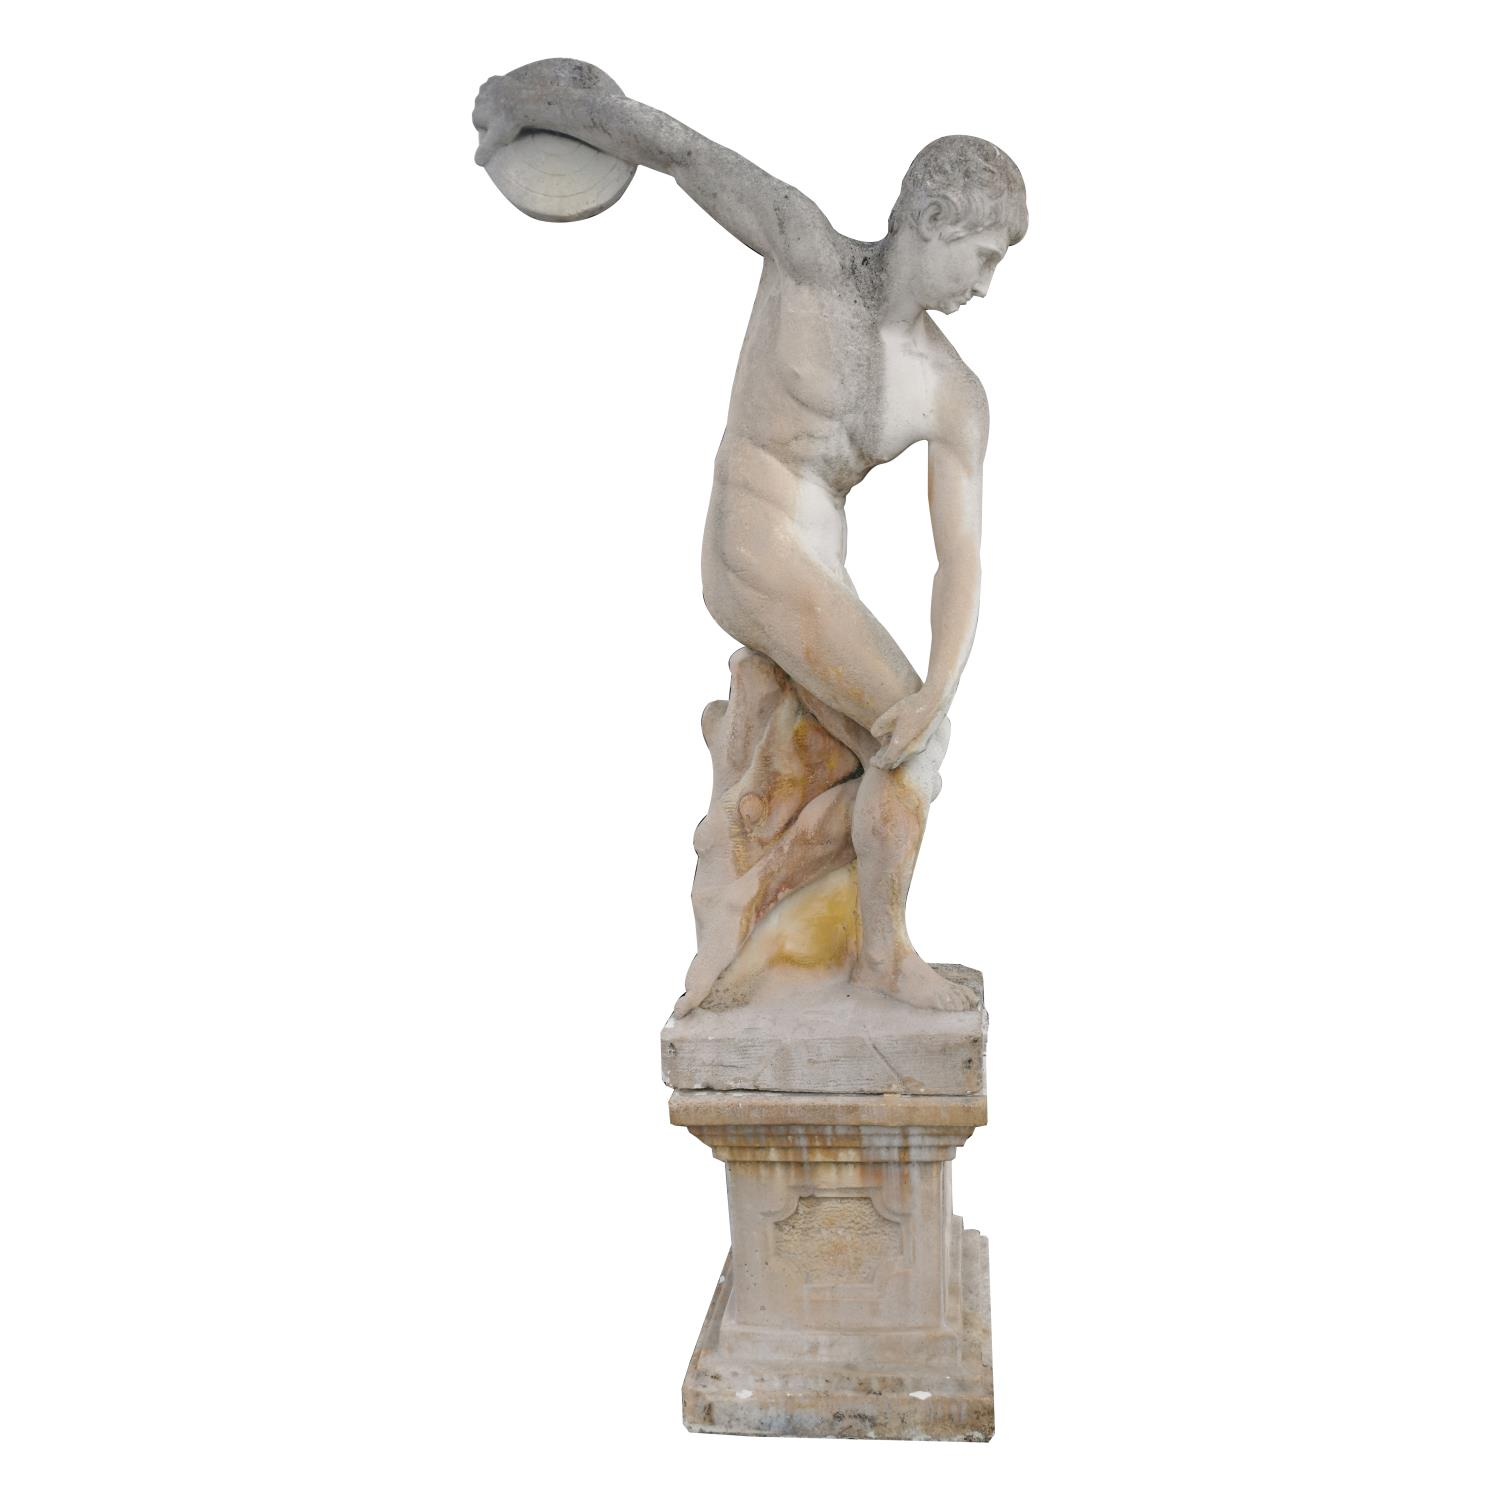 Moulded stone statue of Greek Disc Thrower